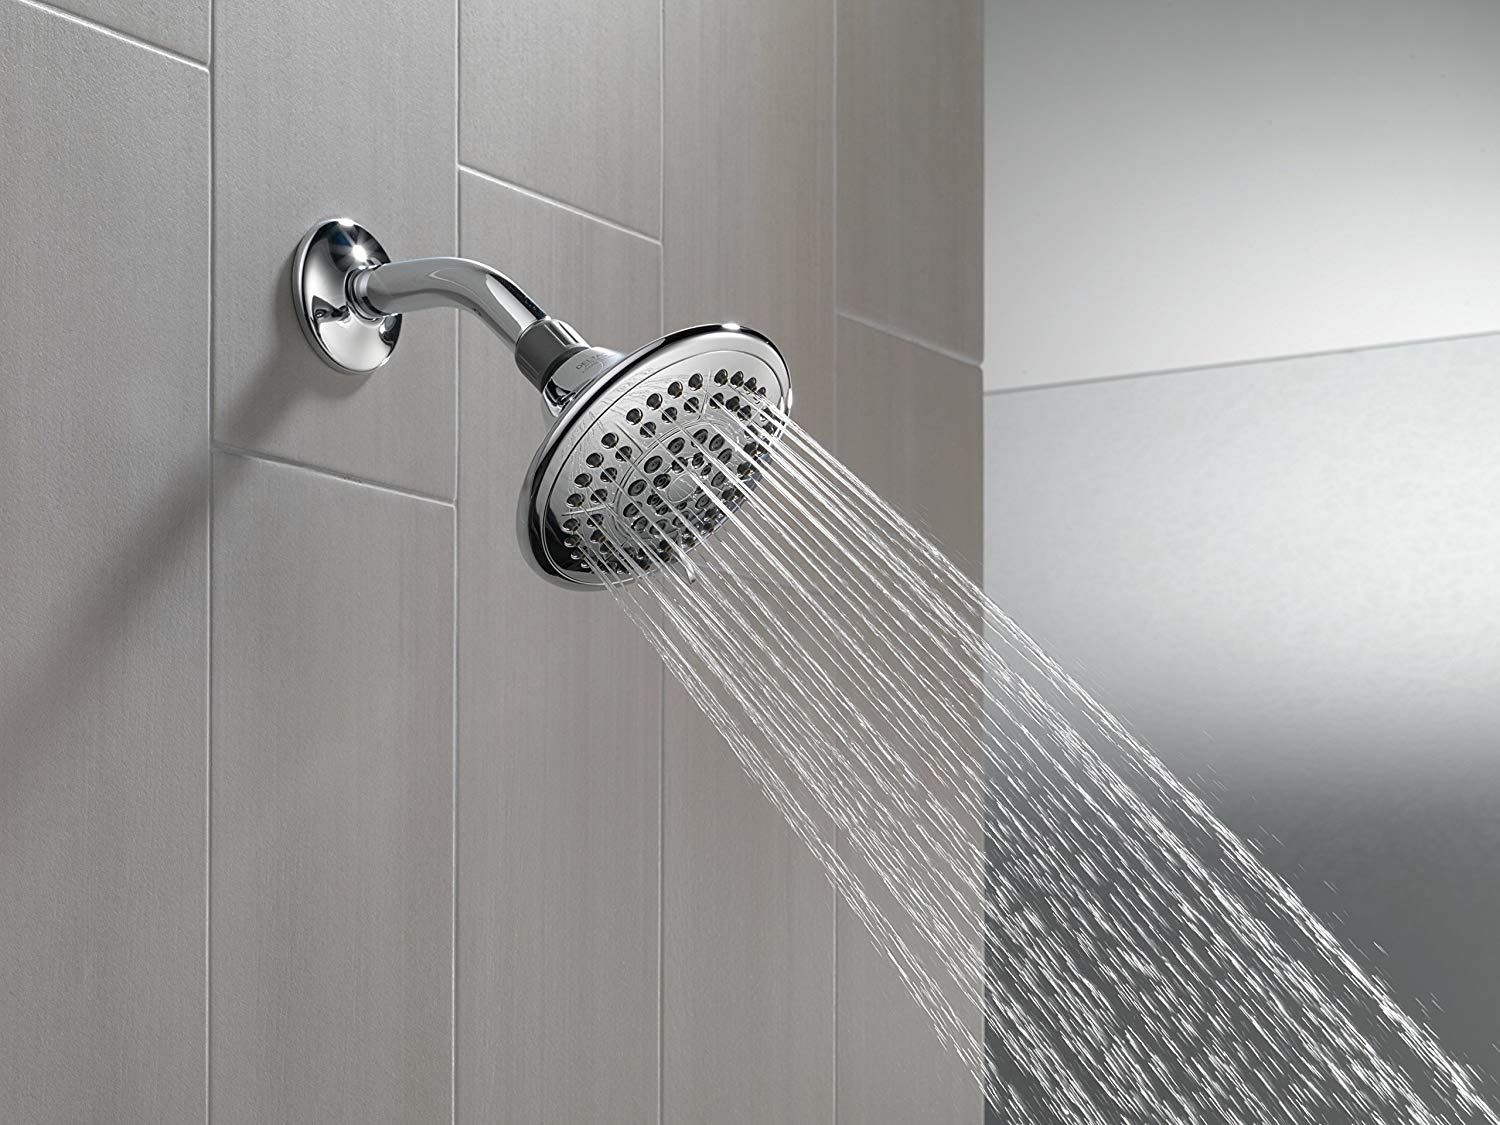 Best water saving shower head 2018 the homester - Which uses more water bath or shower ...